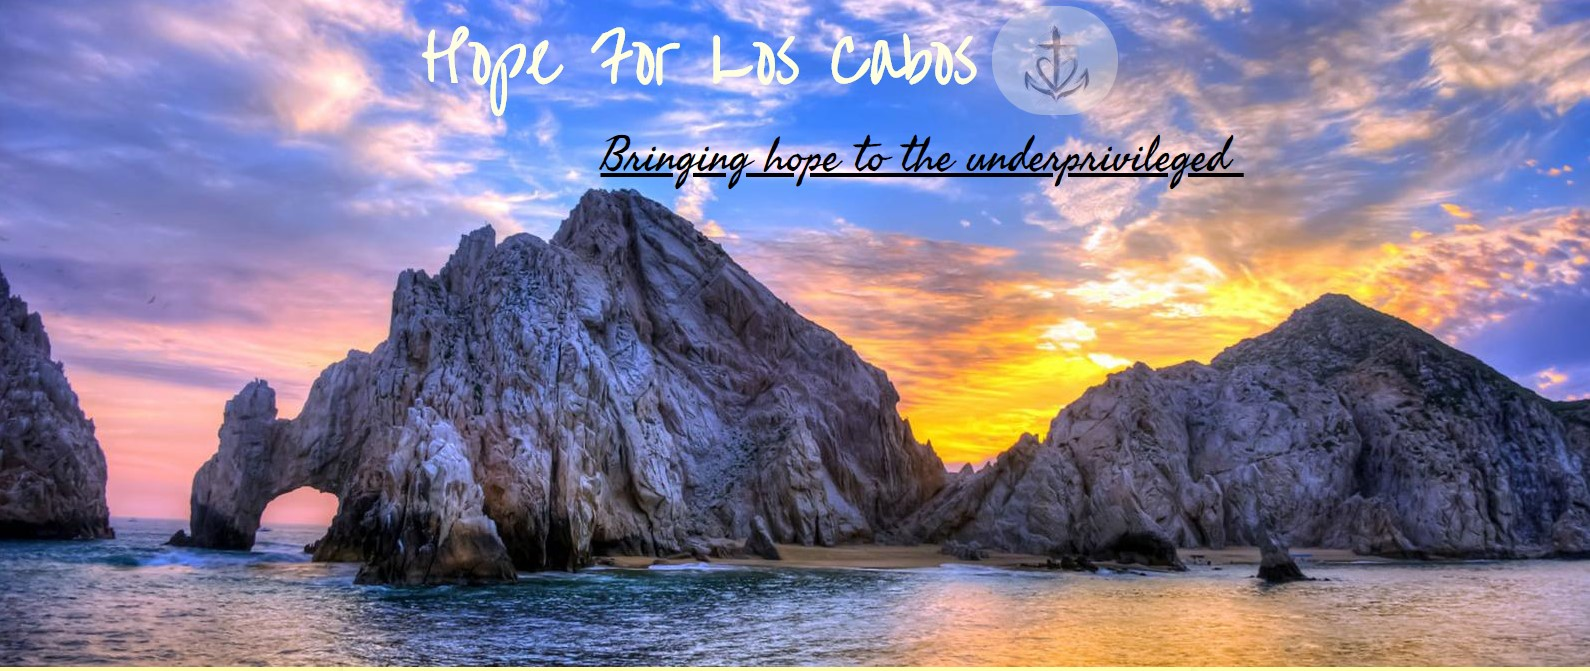 Hope for Cabos Photo